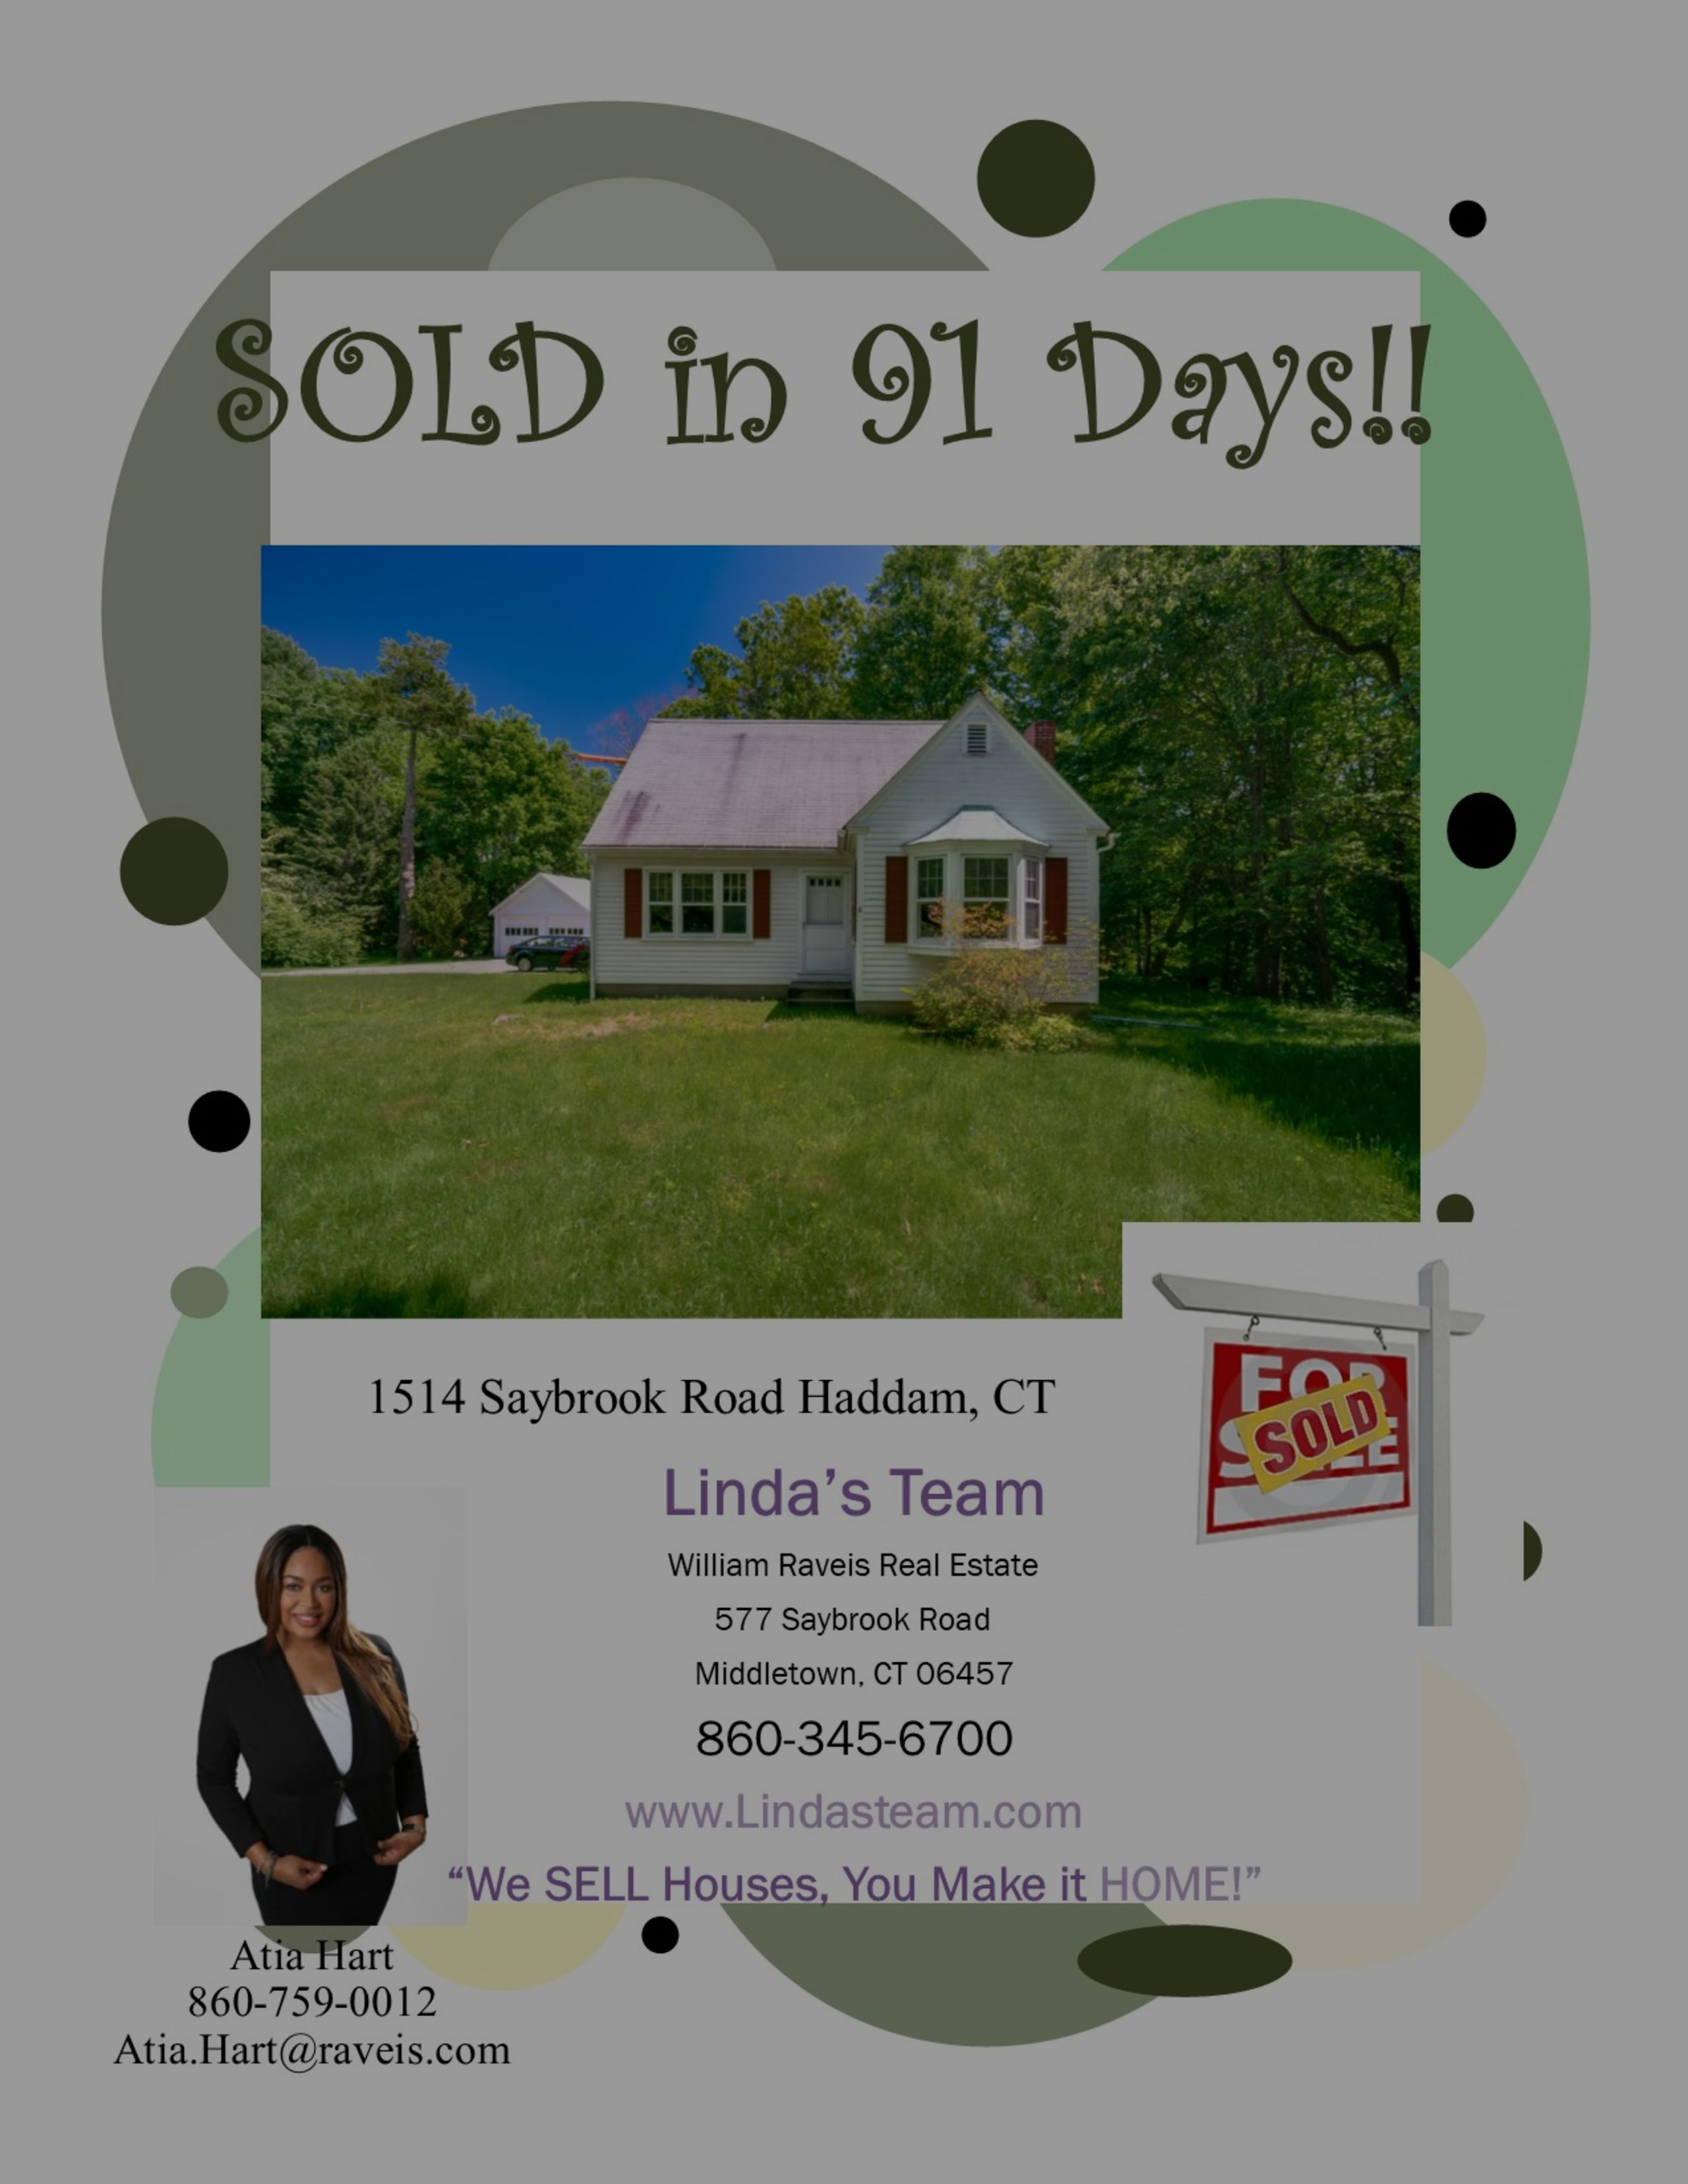 SOLD in 91 Days in Haddam!